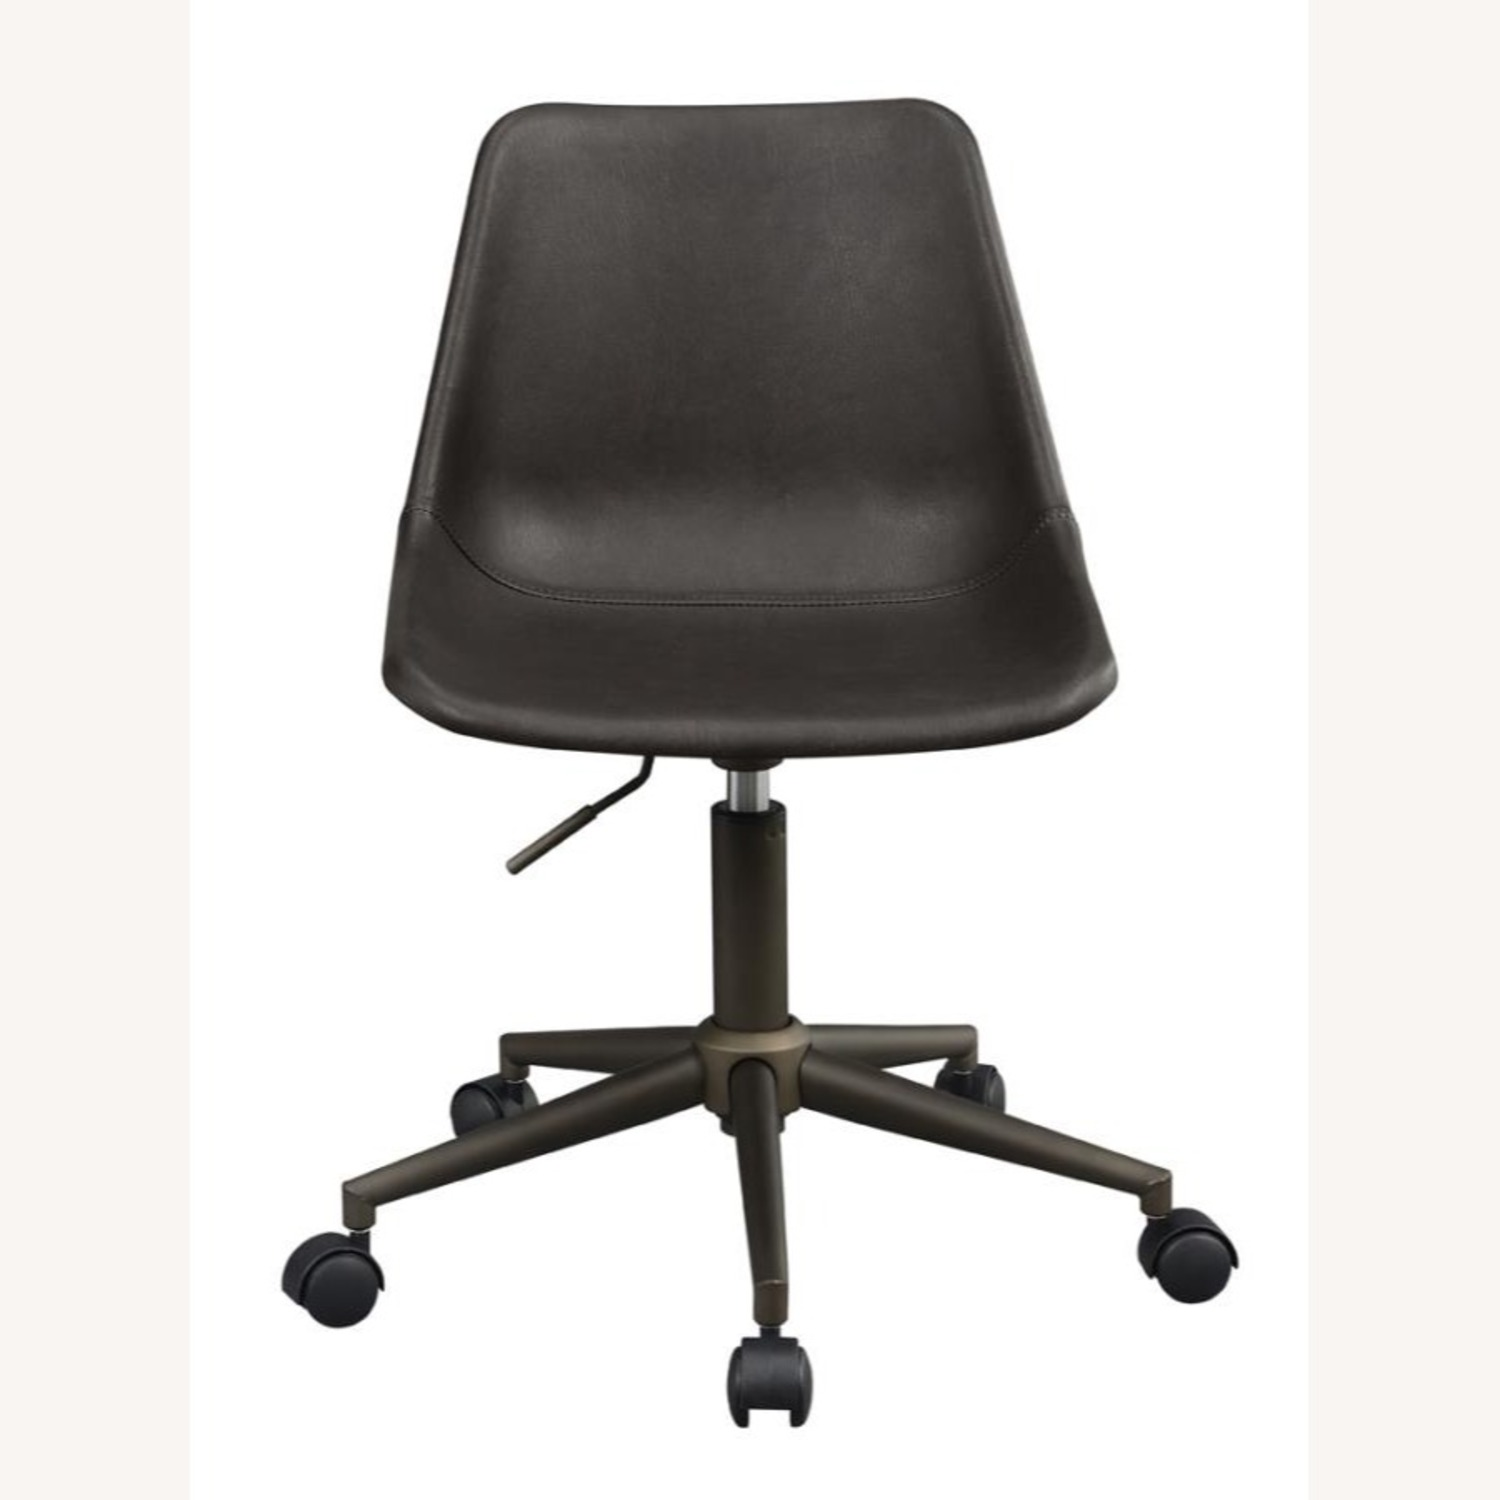 Office Chair In Brown Leatherette & Bronze Base - image-1